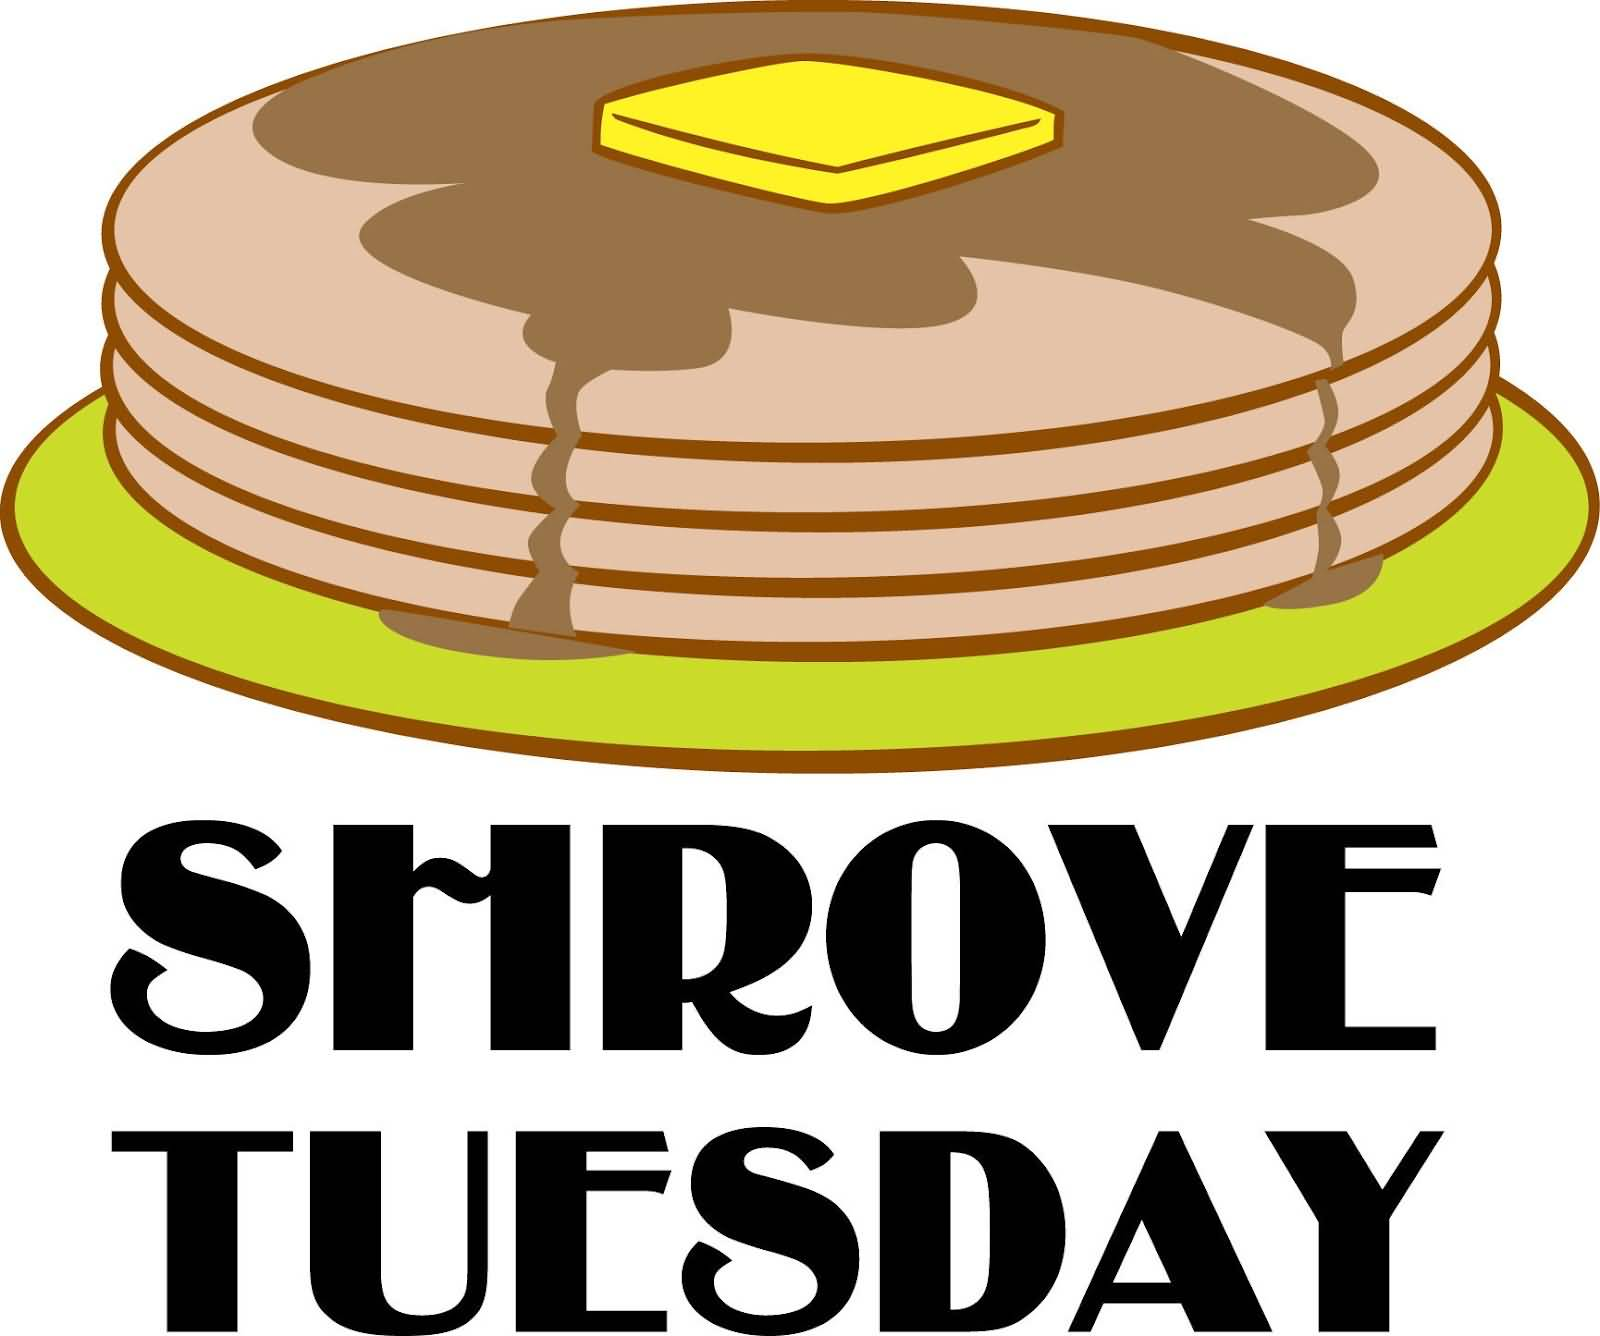 shrove tuesday pancake clipart rh askideas com pancake clip art black and white pancake clip art free download